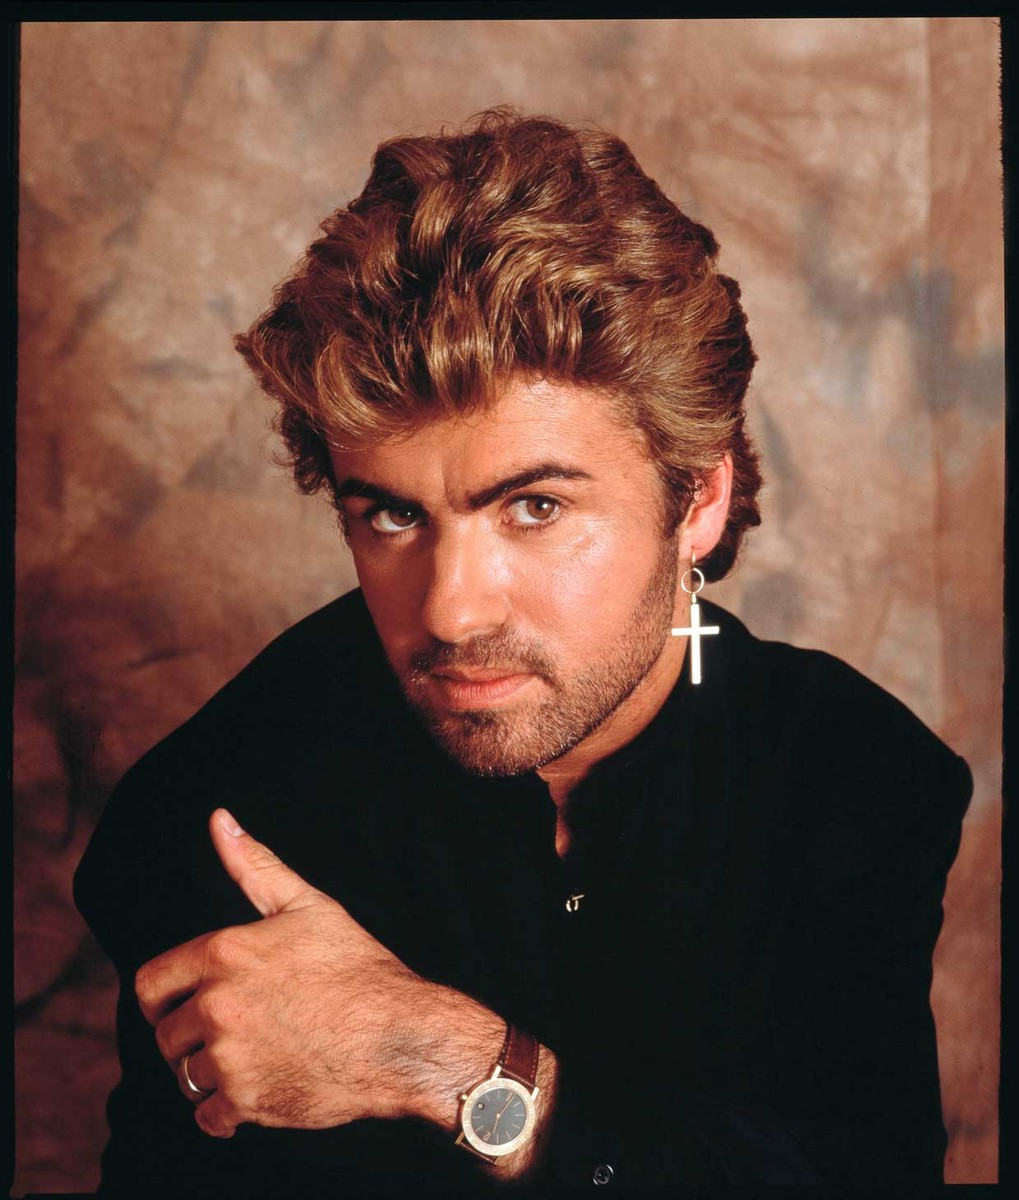 George Michael photographed in London in 1987.